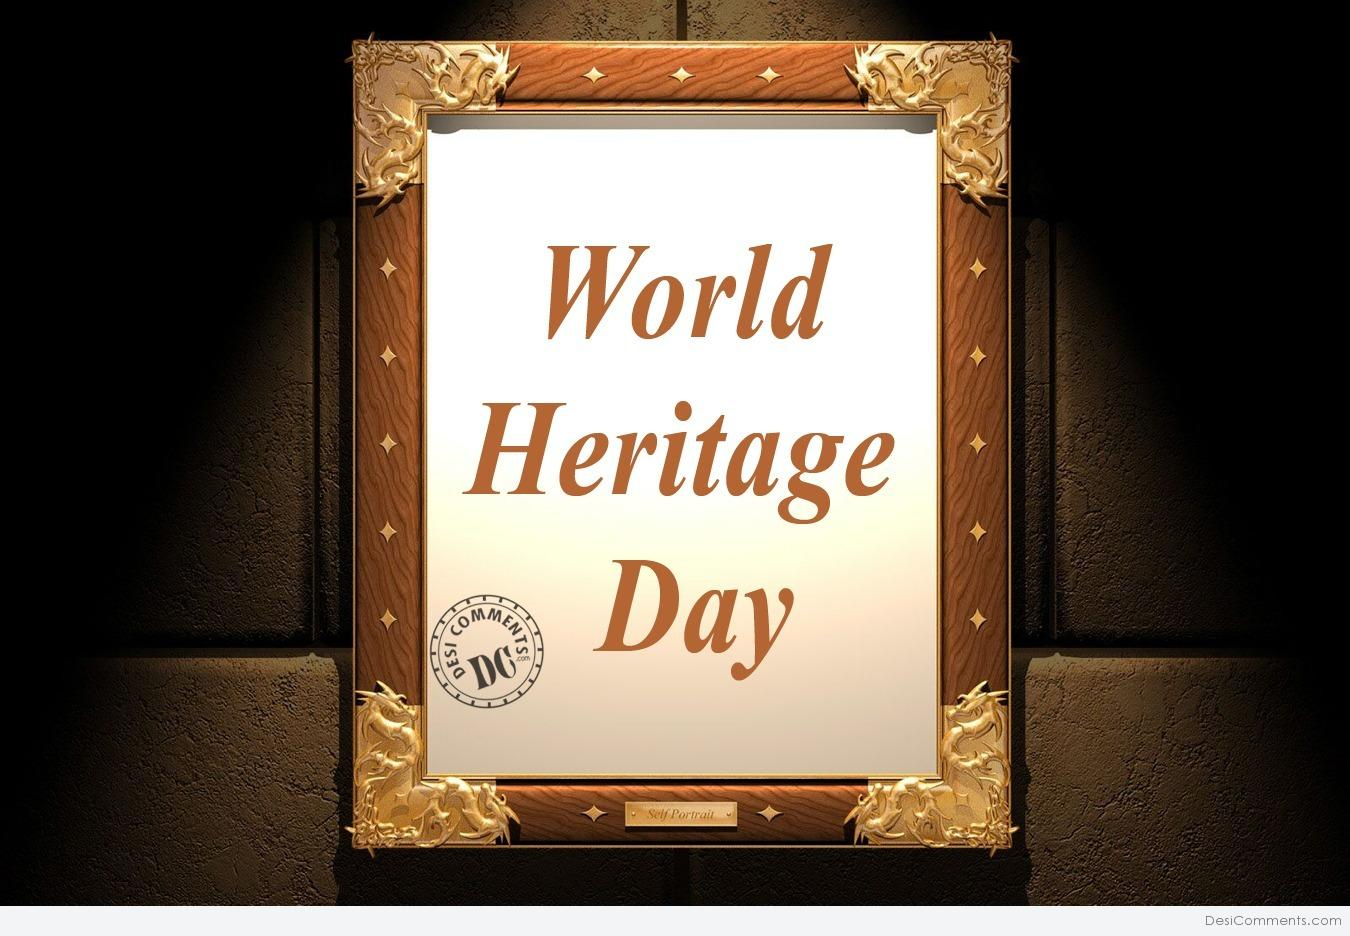 world heritage day pictures images graphics for facebook whatsapp. Black Bedroom Furniture Sets. Home Design Ideas